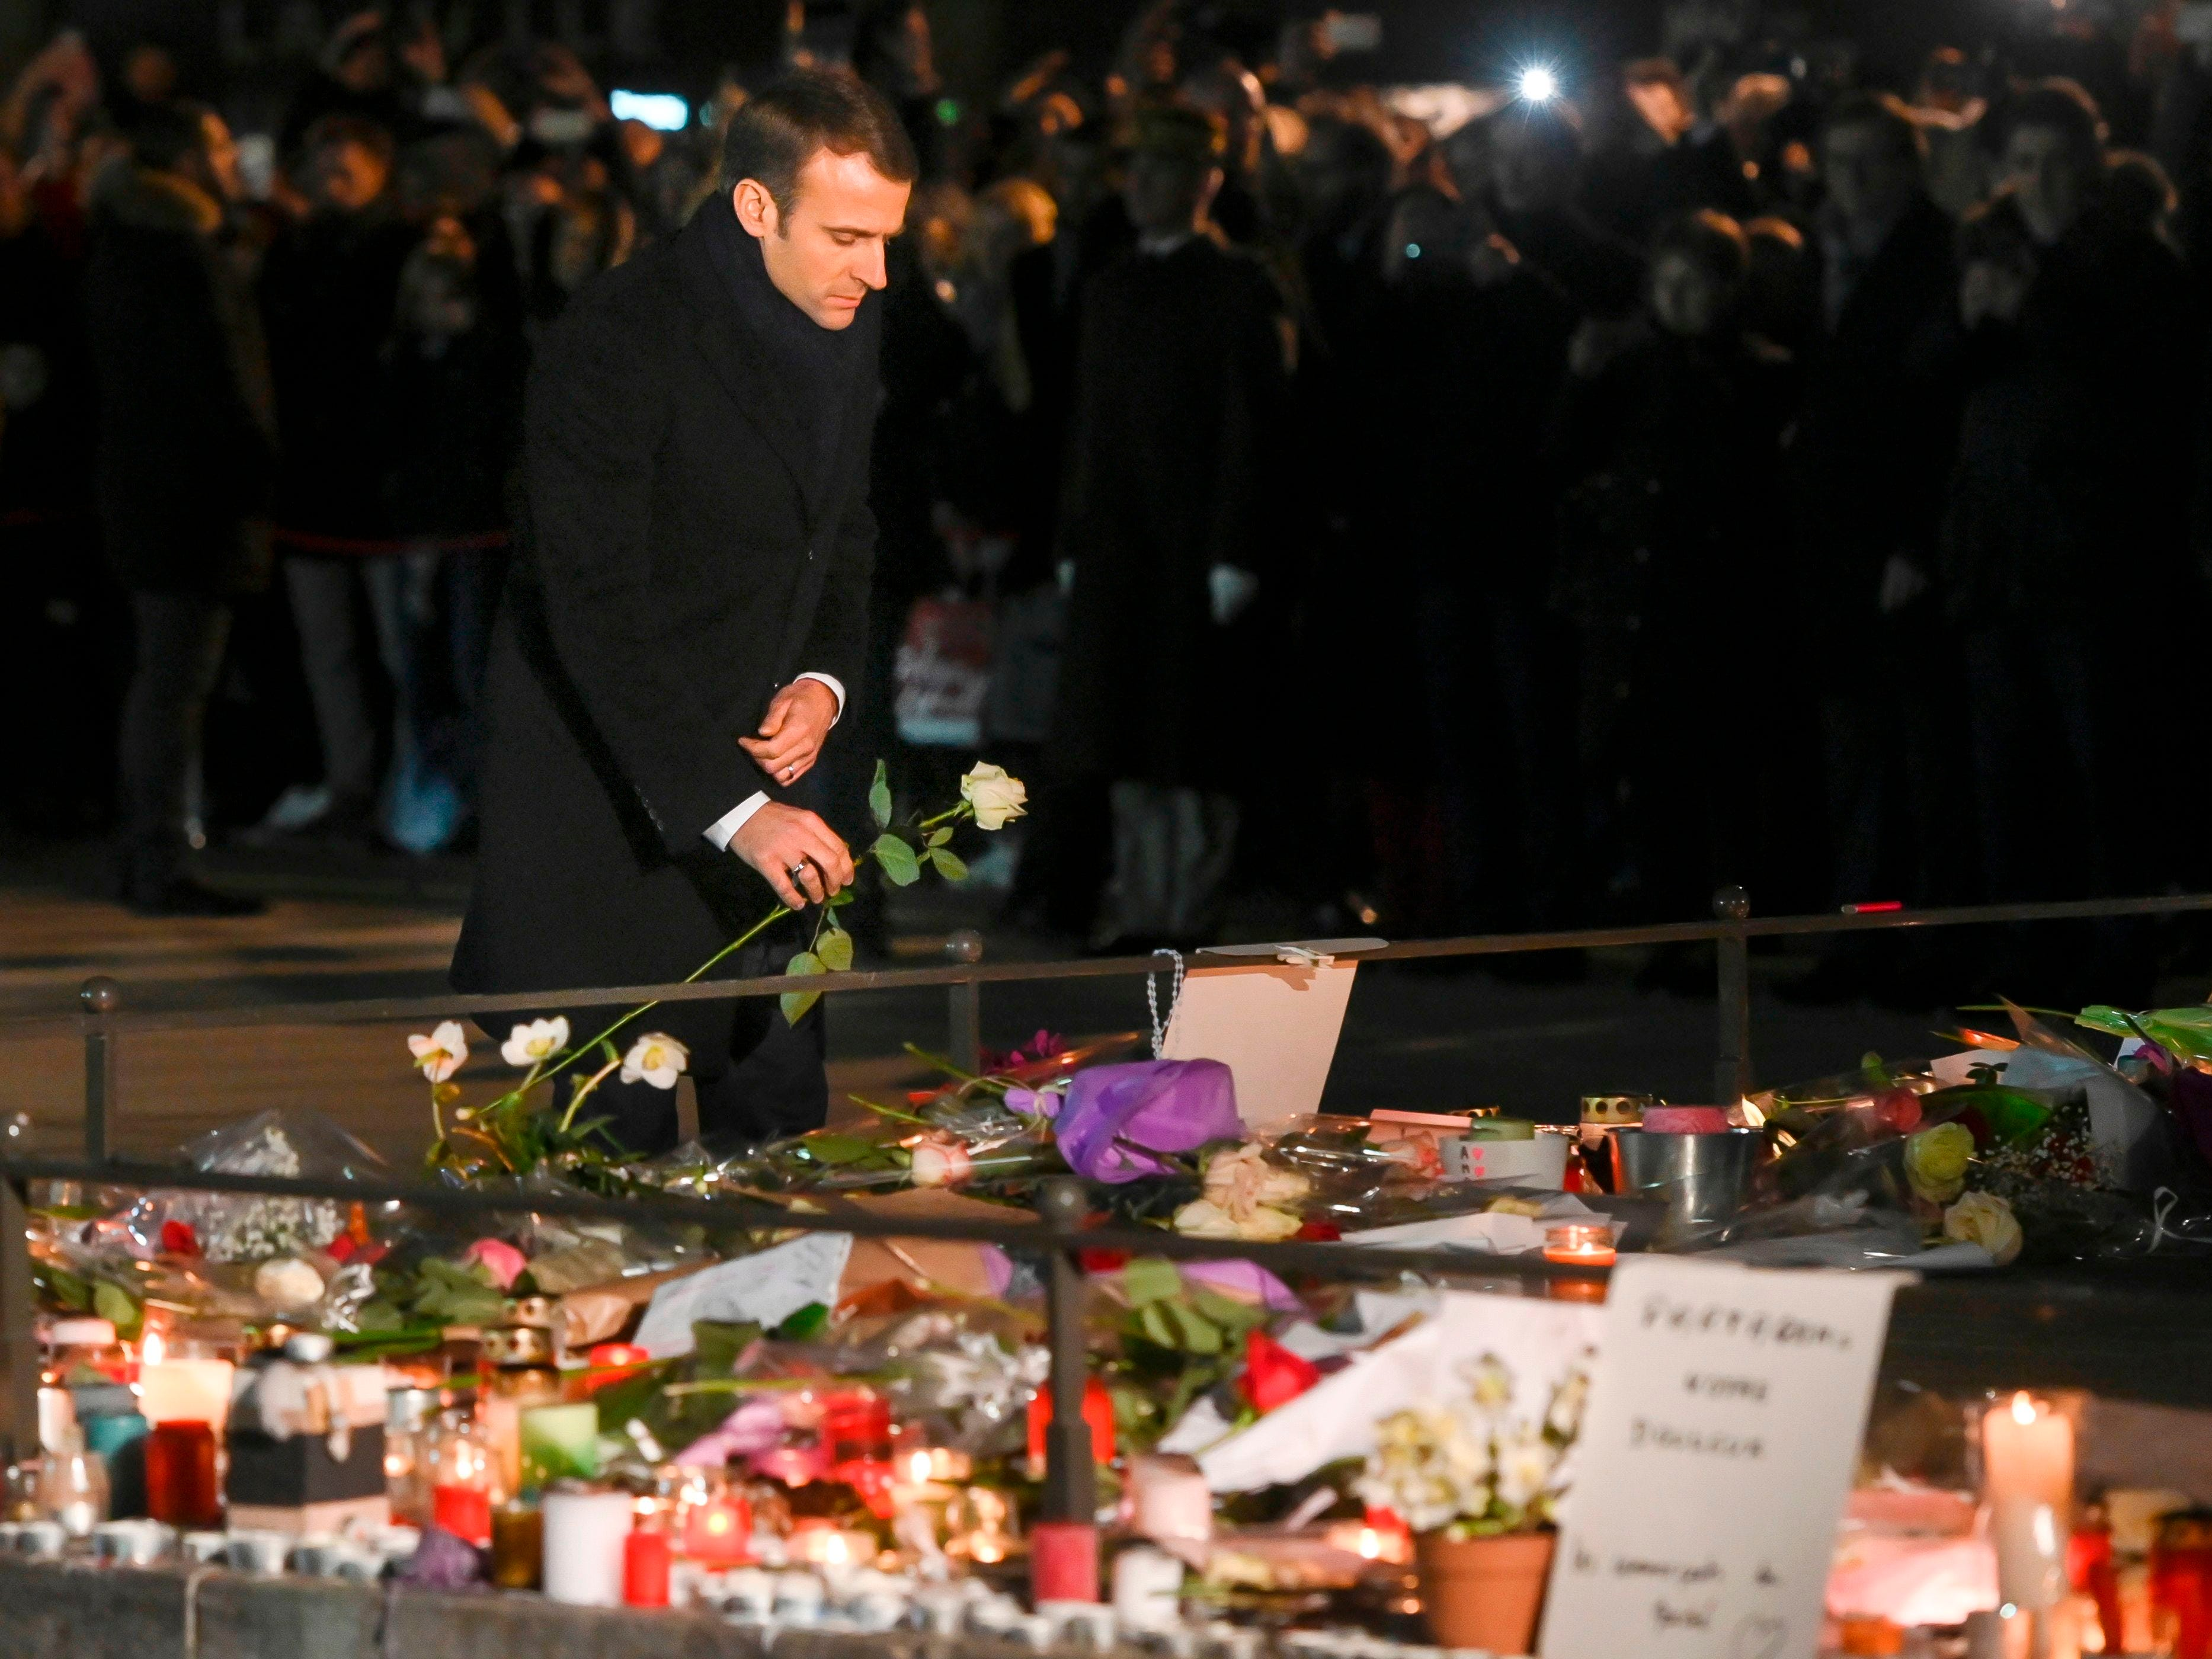 French President Emmanuel Macron lays a white rose at a monument near the Christmas market in Strasbourg, eastern France, used as a makeshift memorial for the victims of the Dec. 11 attack that killed four people.